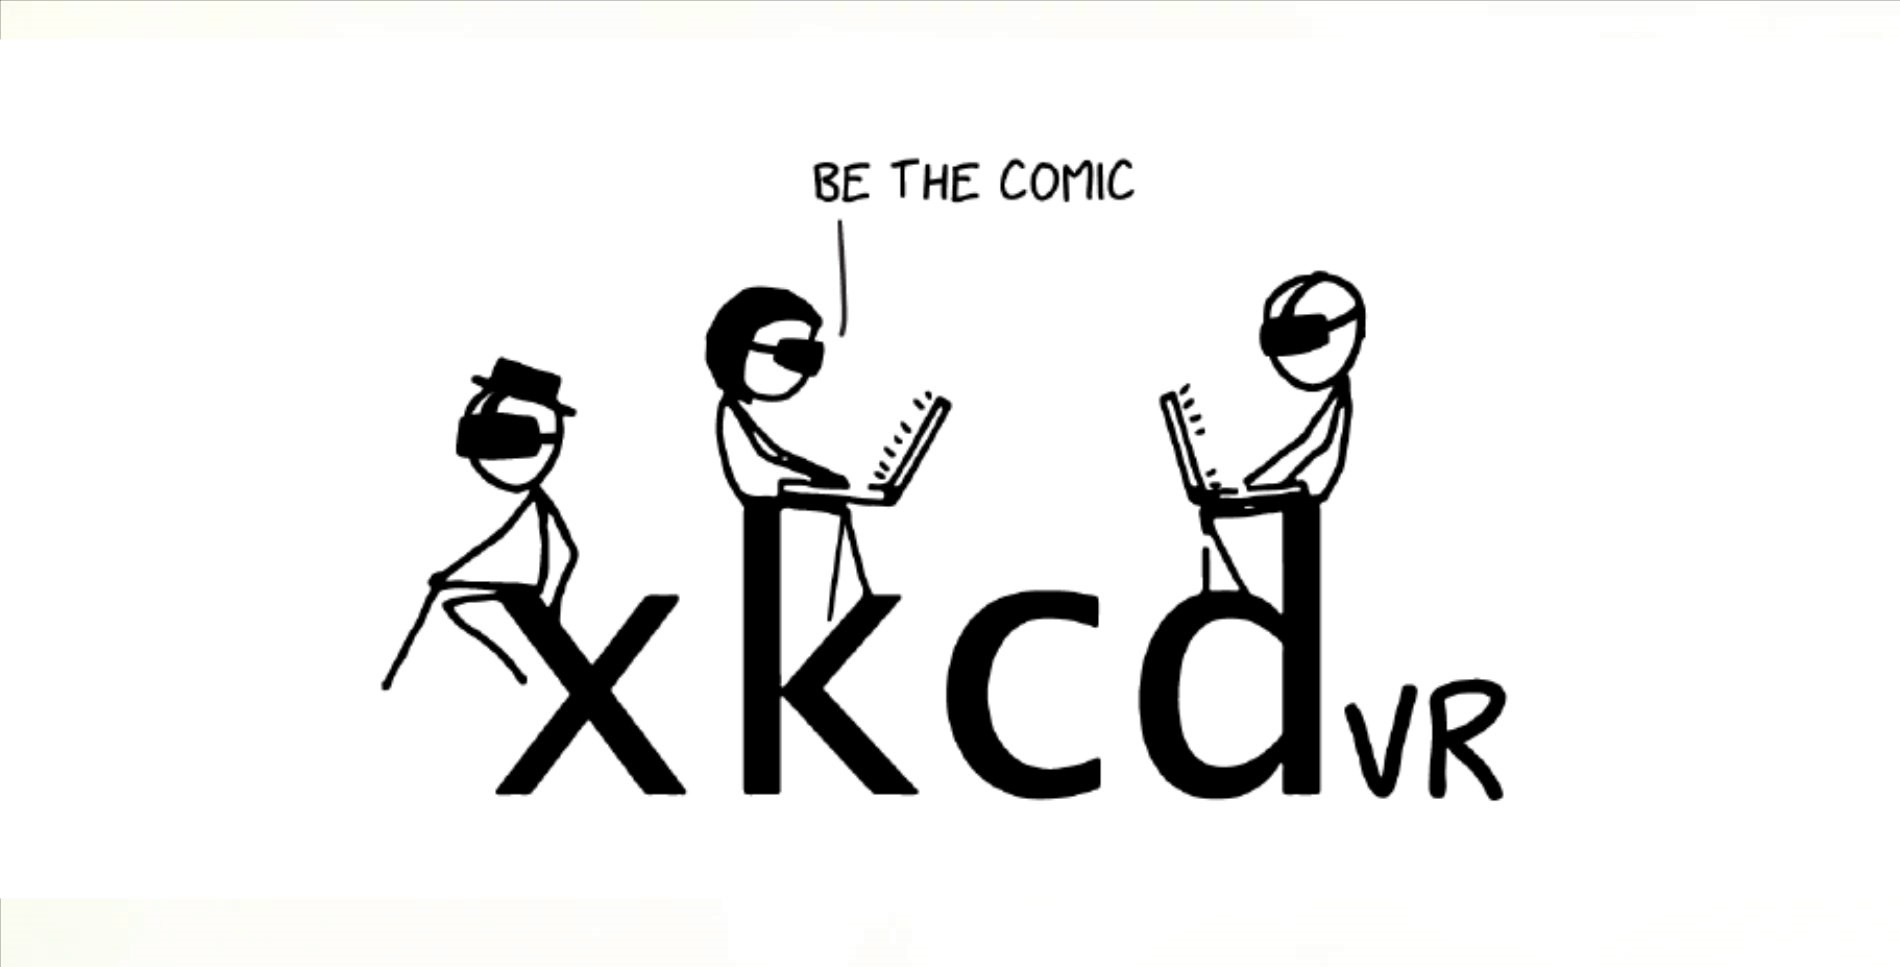 Fan Created Xkcd Vr Tool Lets You Make Your Own Xkcd